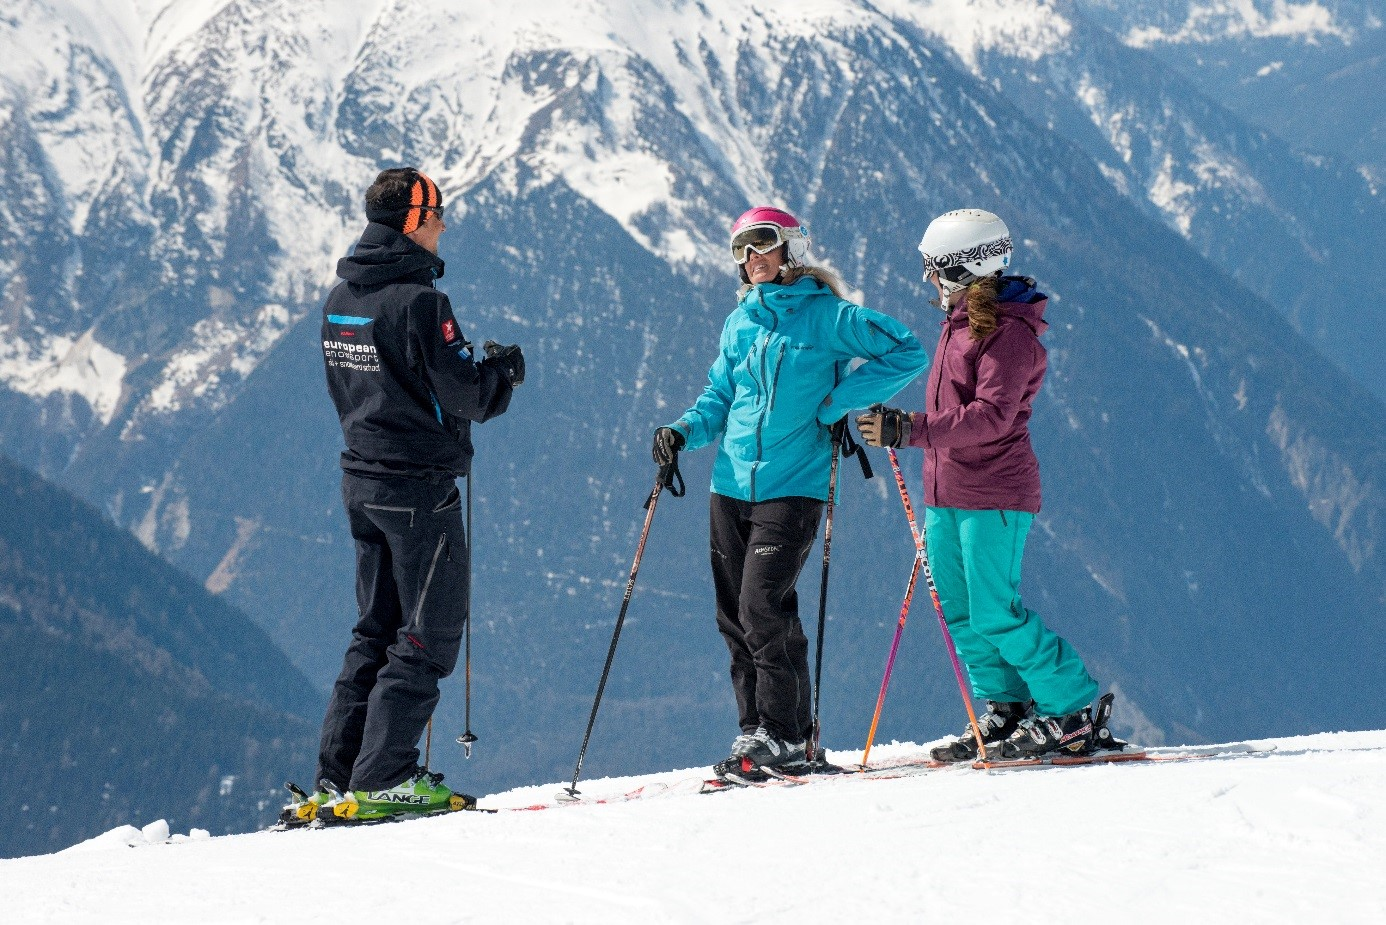 European Snowsport instructor